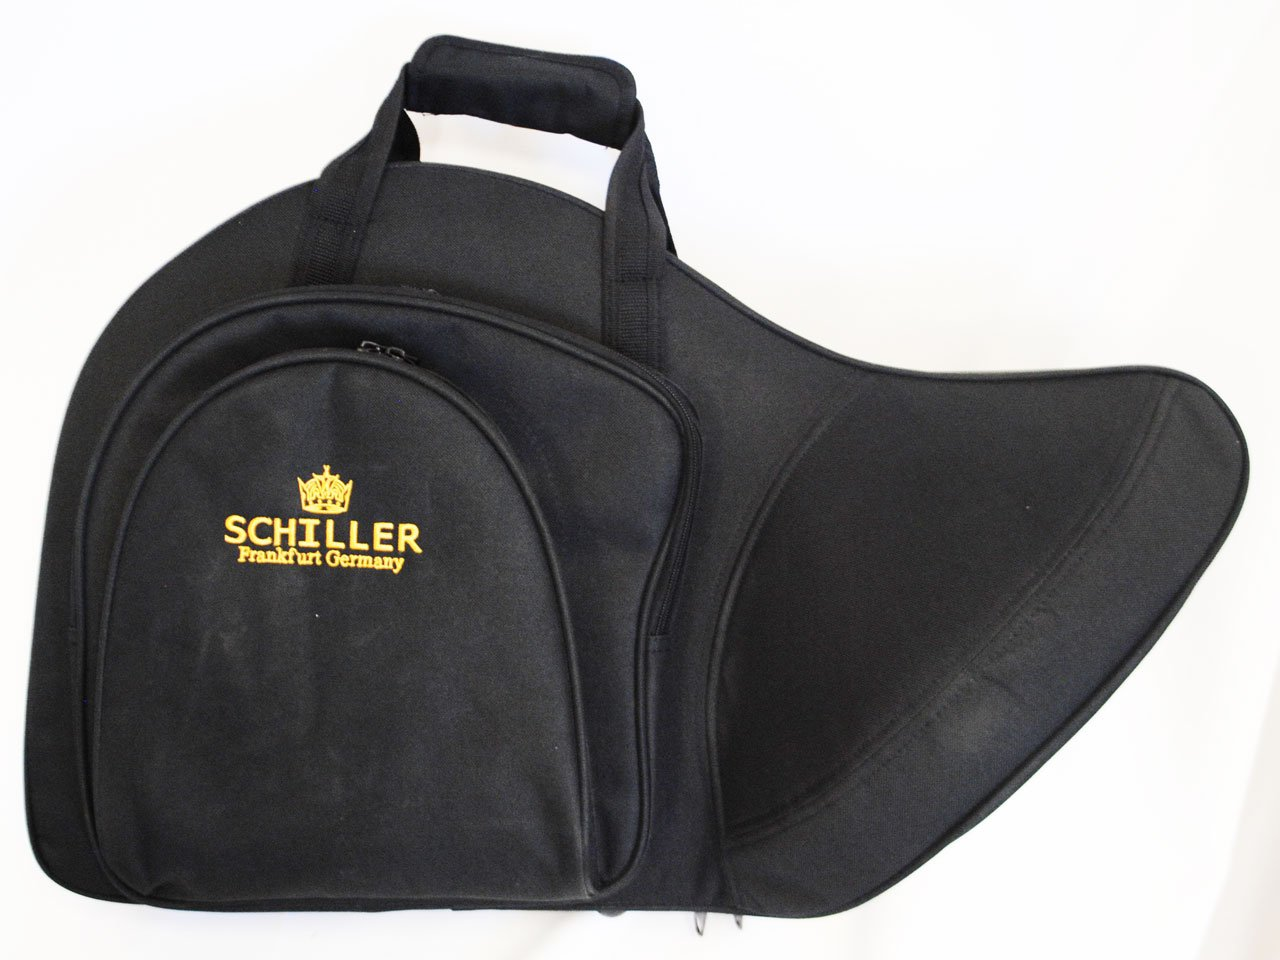 Schiller Deluxe French Horn Case